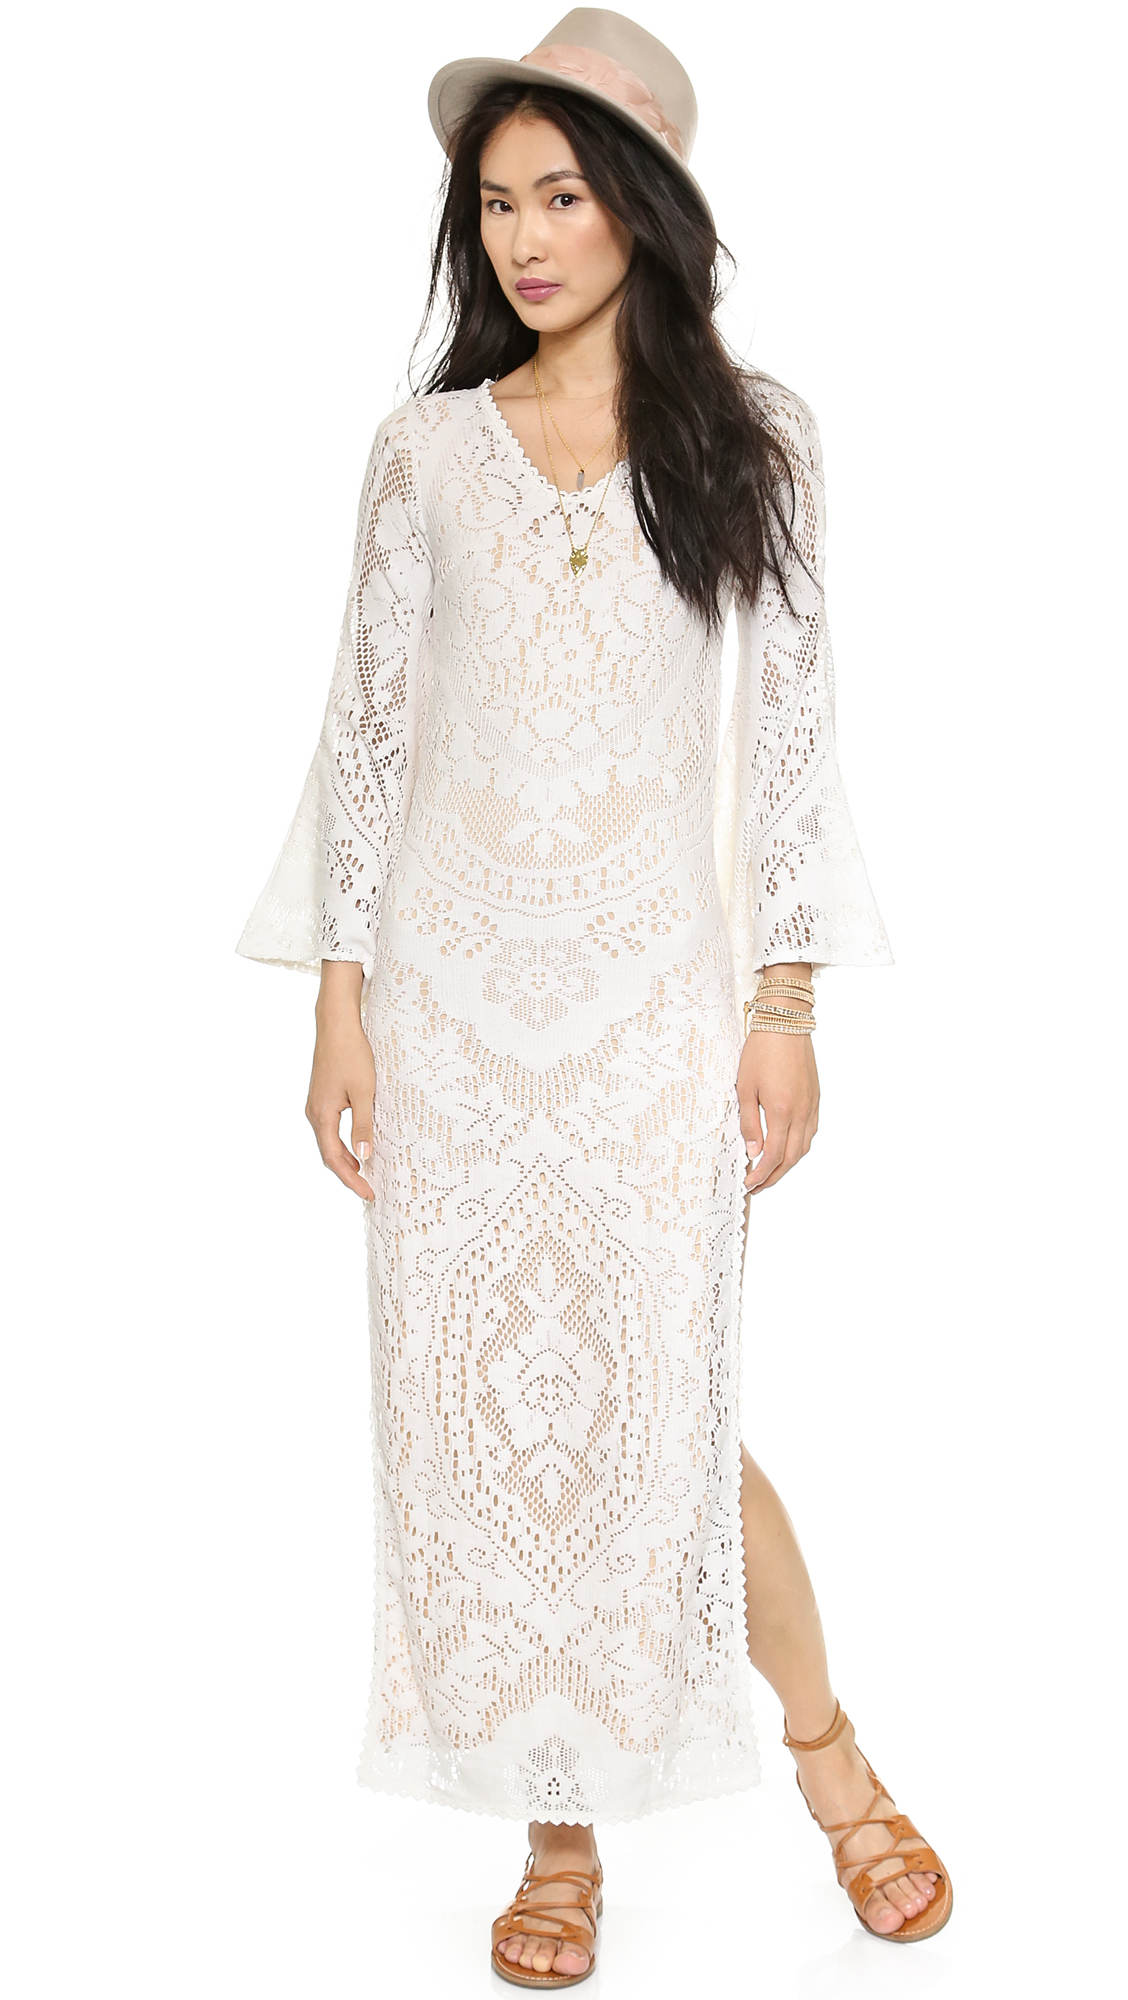 Spell White Dove Vintage Lace Maxi Dress - White in White ...